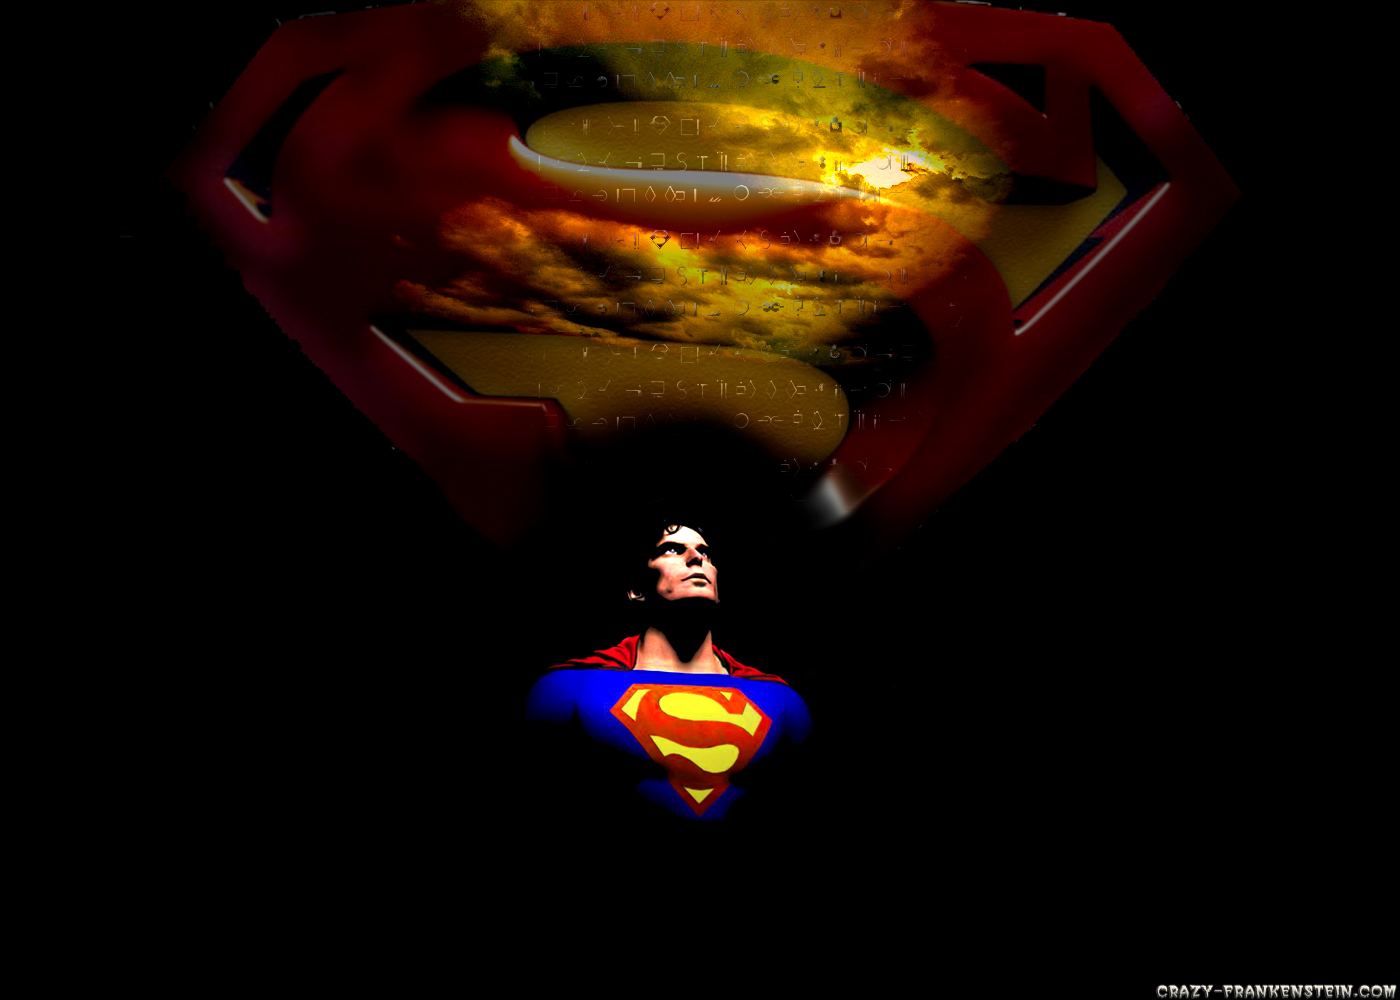 wallpapers superman wallpaper hd aklama spermen hd logo superman 1400x1000